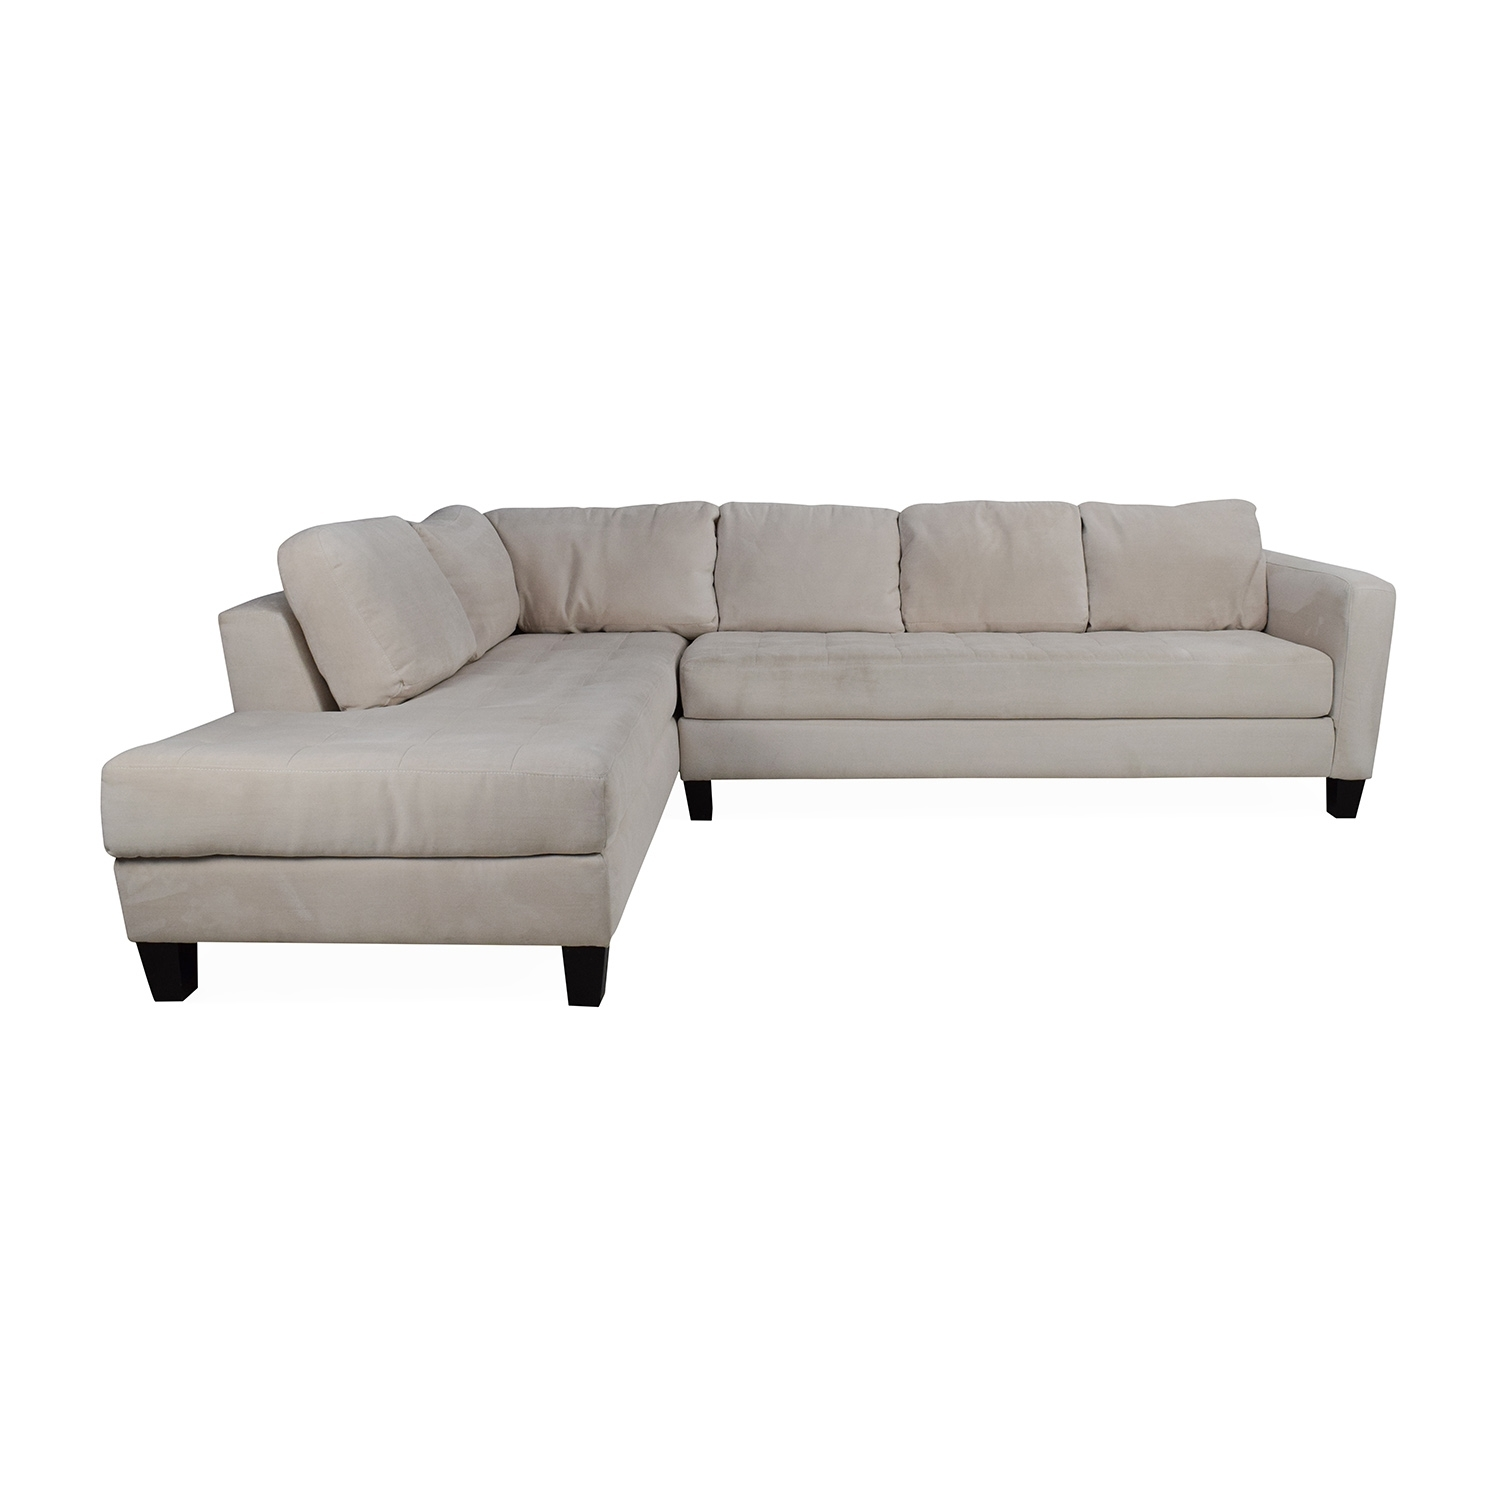 Featured Image of Macys Sectional Sofas